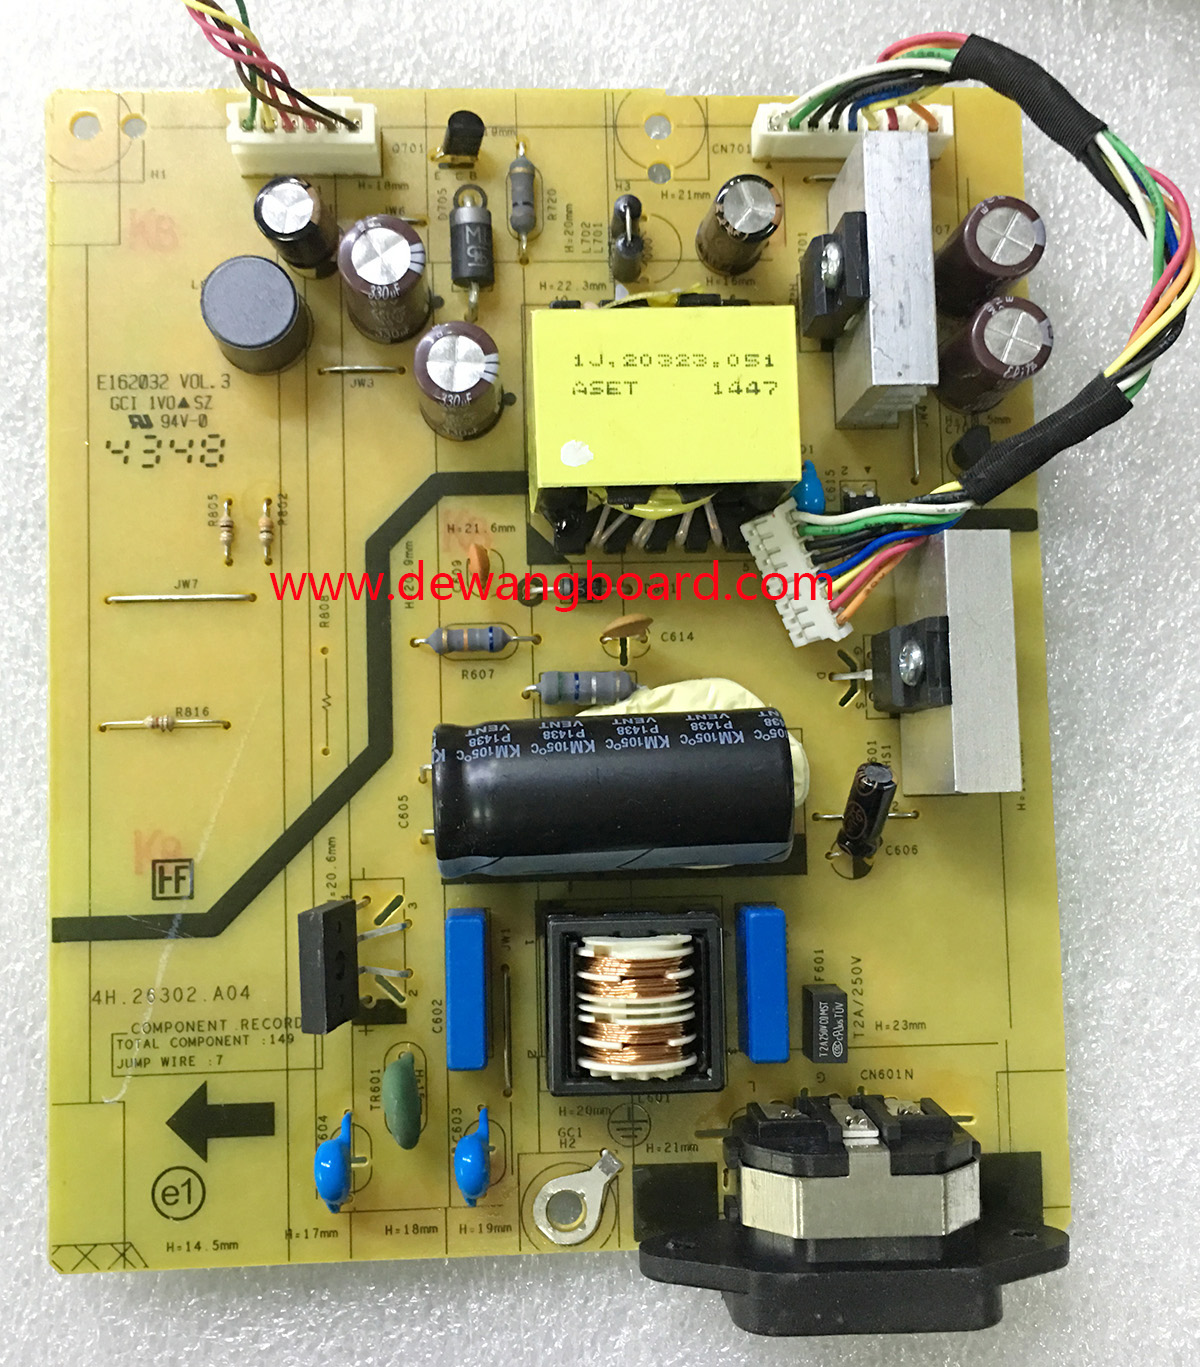 dell P2214HB P2414HB power board 4H.26302.A04 4H.26302.A10